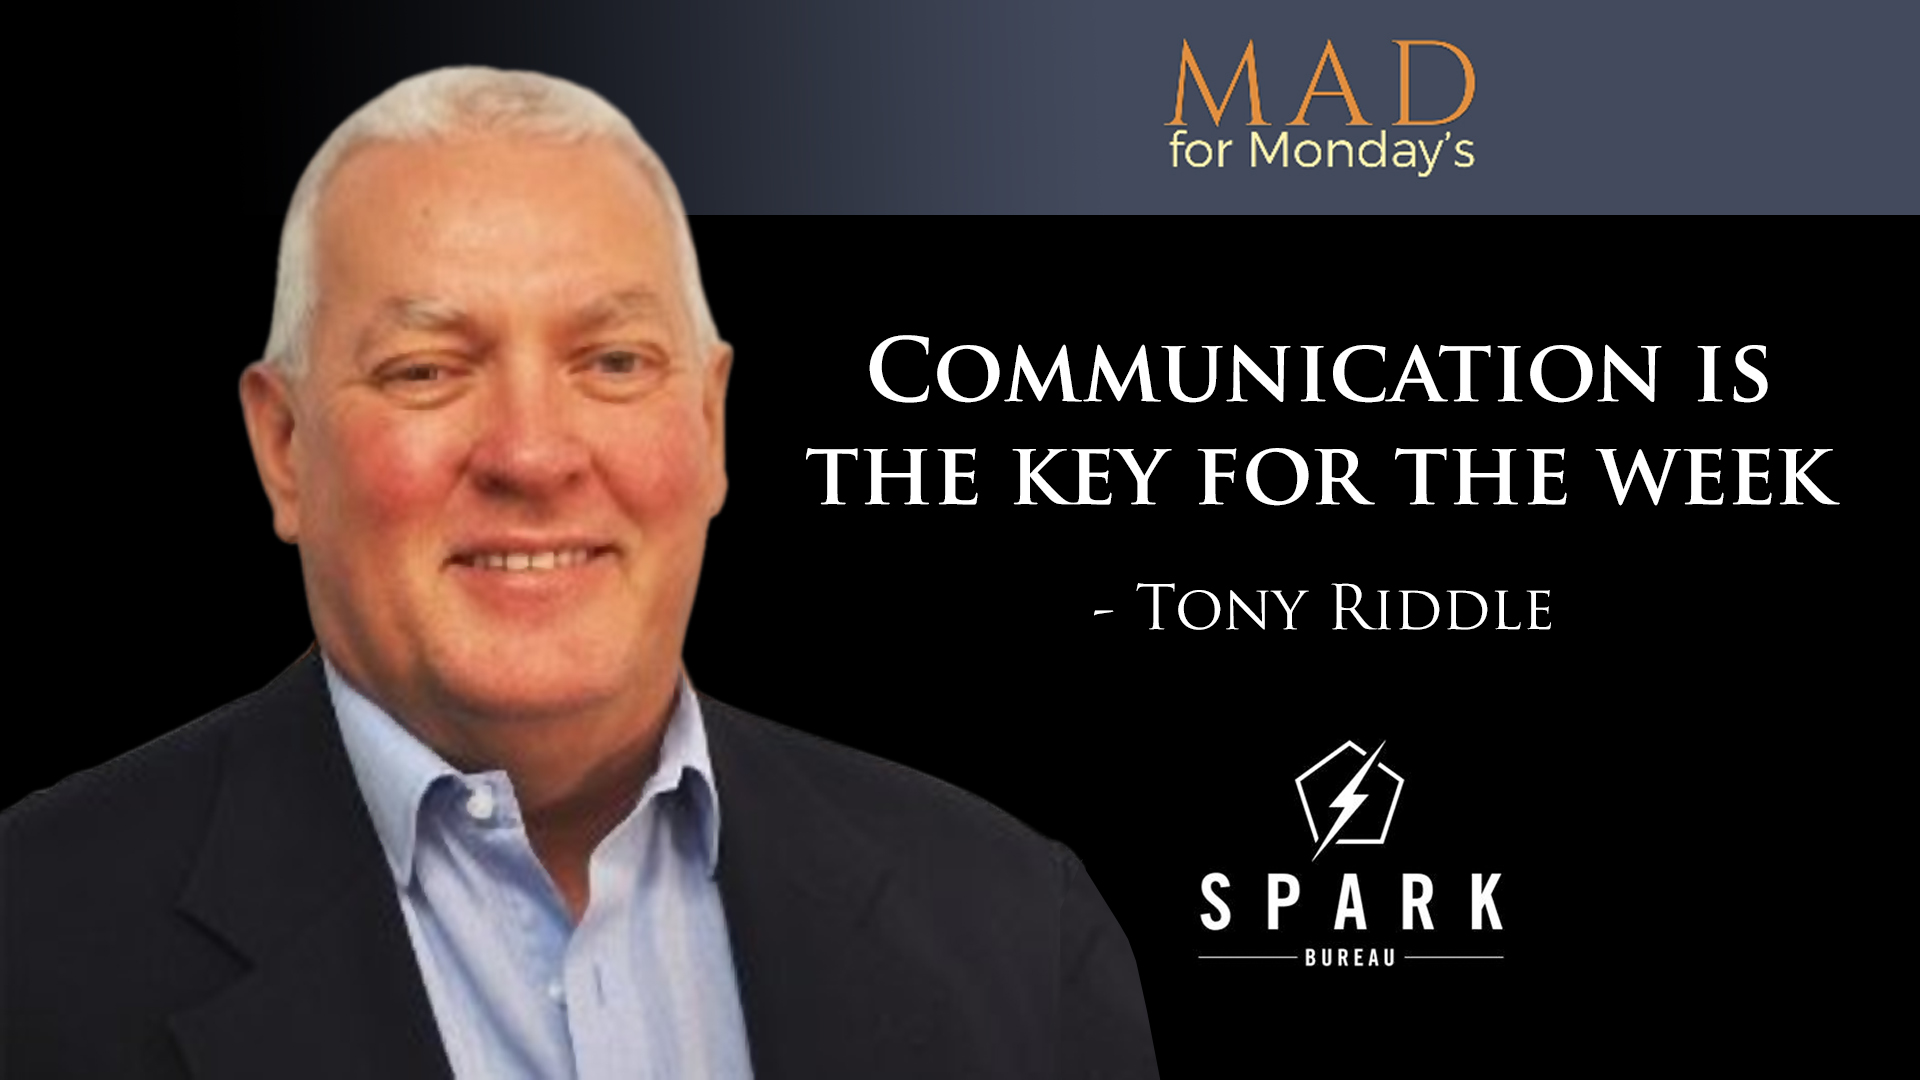 M.A.D. (Make a Difference) for Monday's – Communication is the key for the week